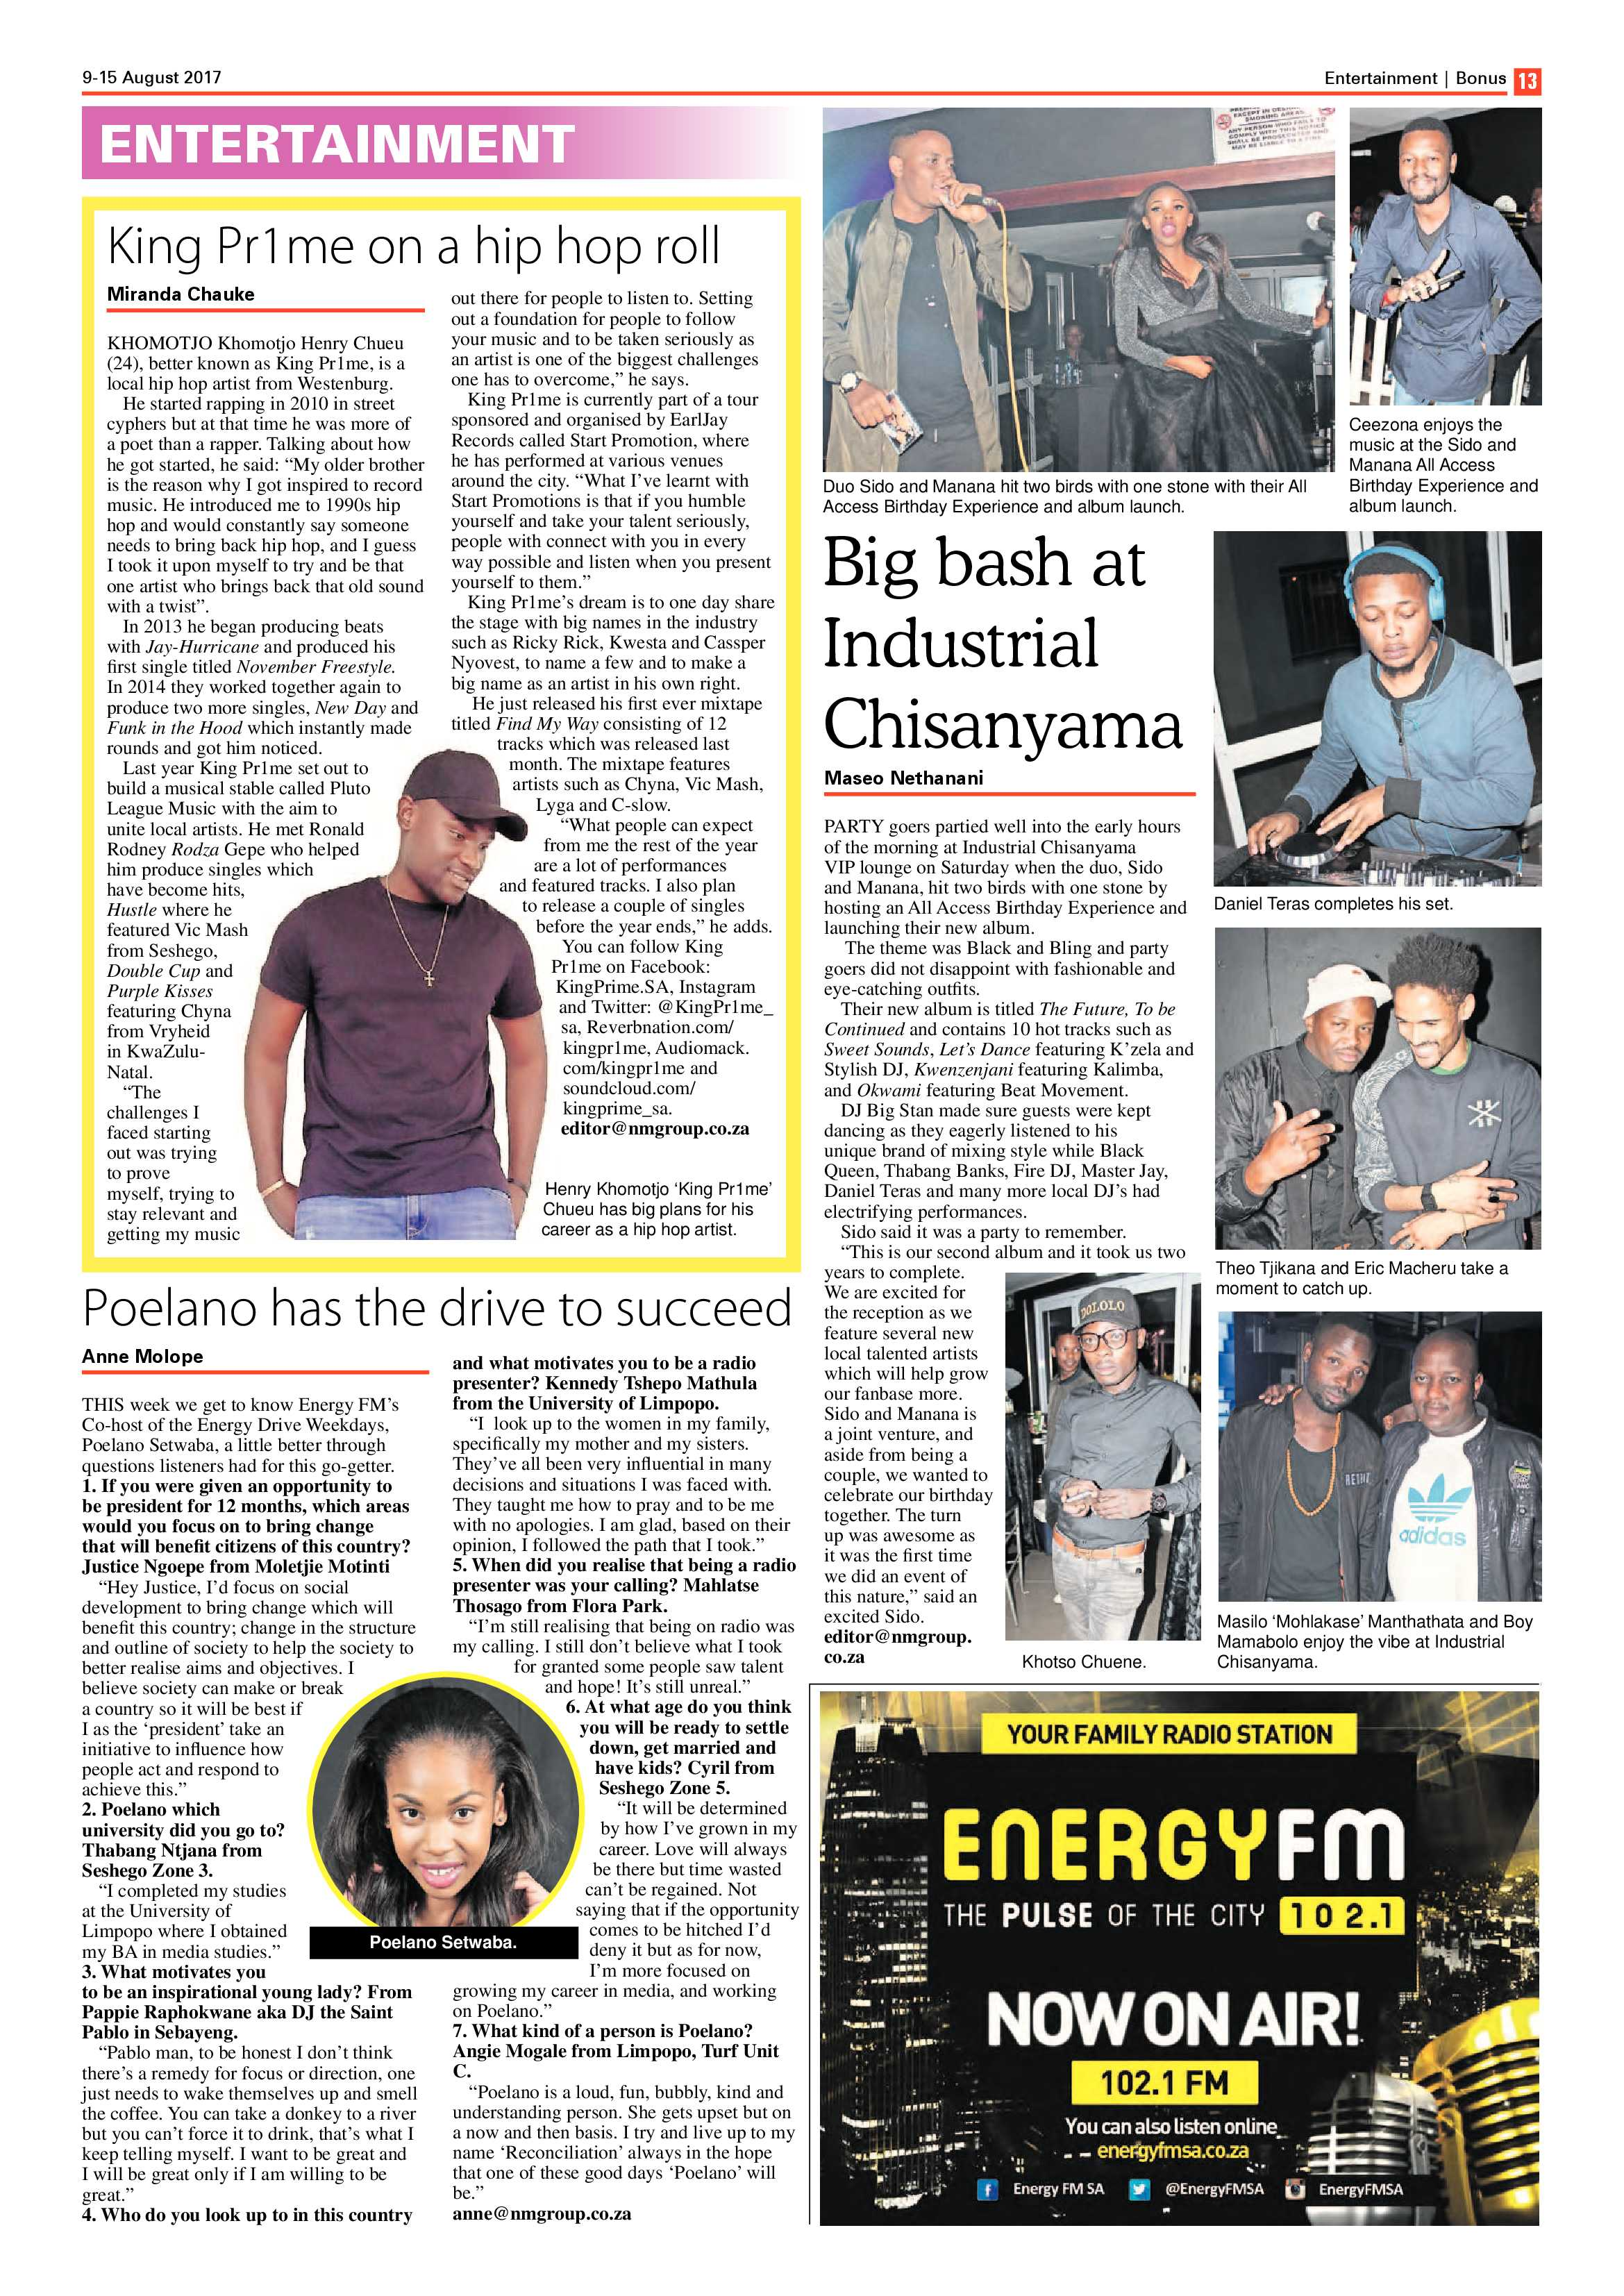 review-bonus-9-august-2017-epapers-page-13